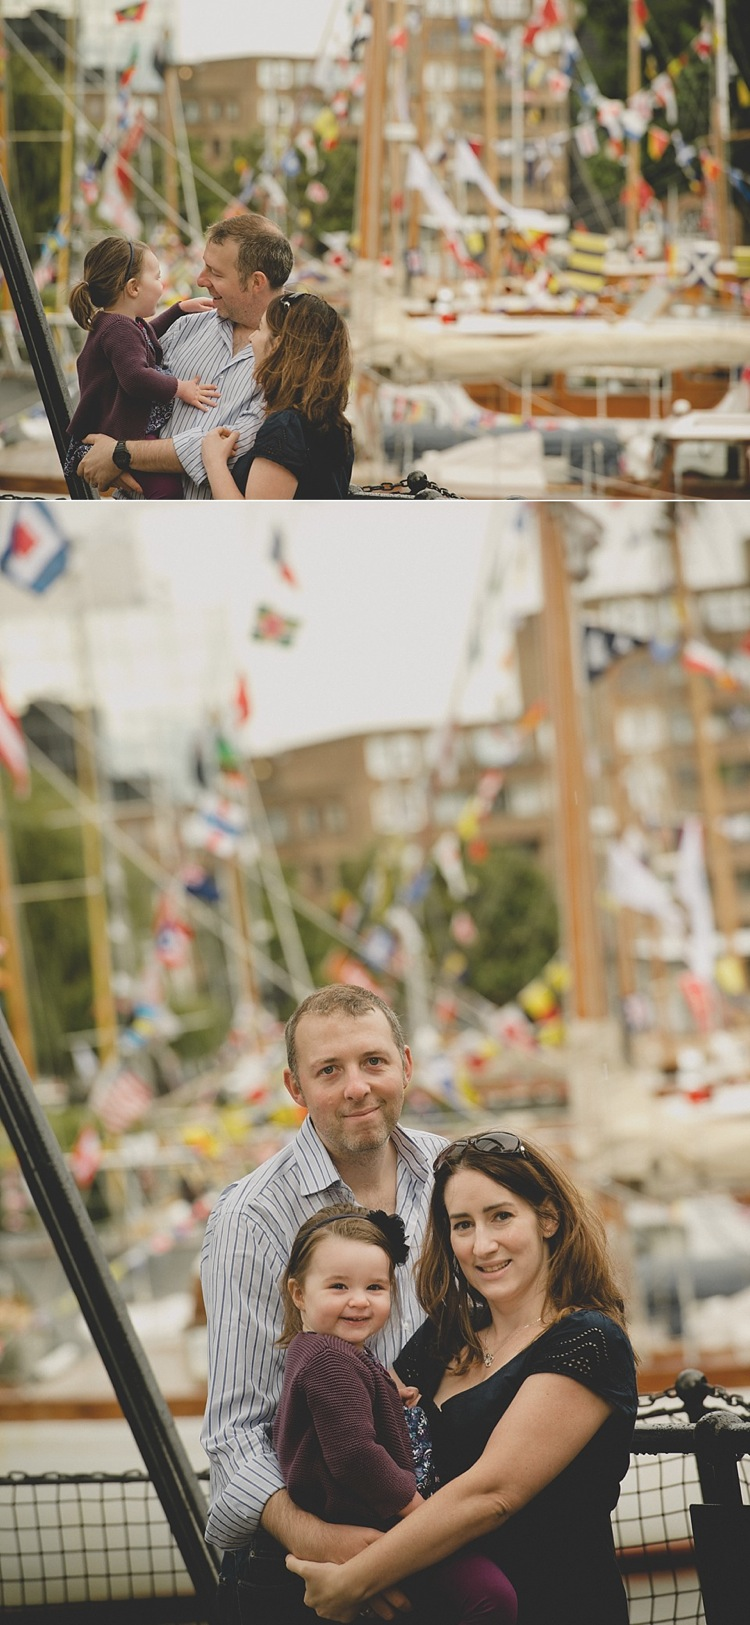 family photoshoot two year old st katharine's docks london lily sawyer photo